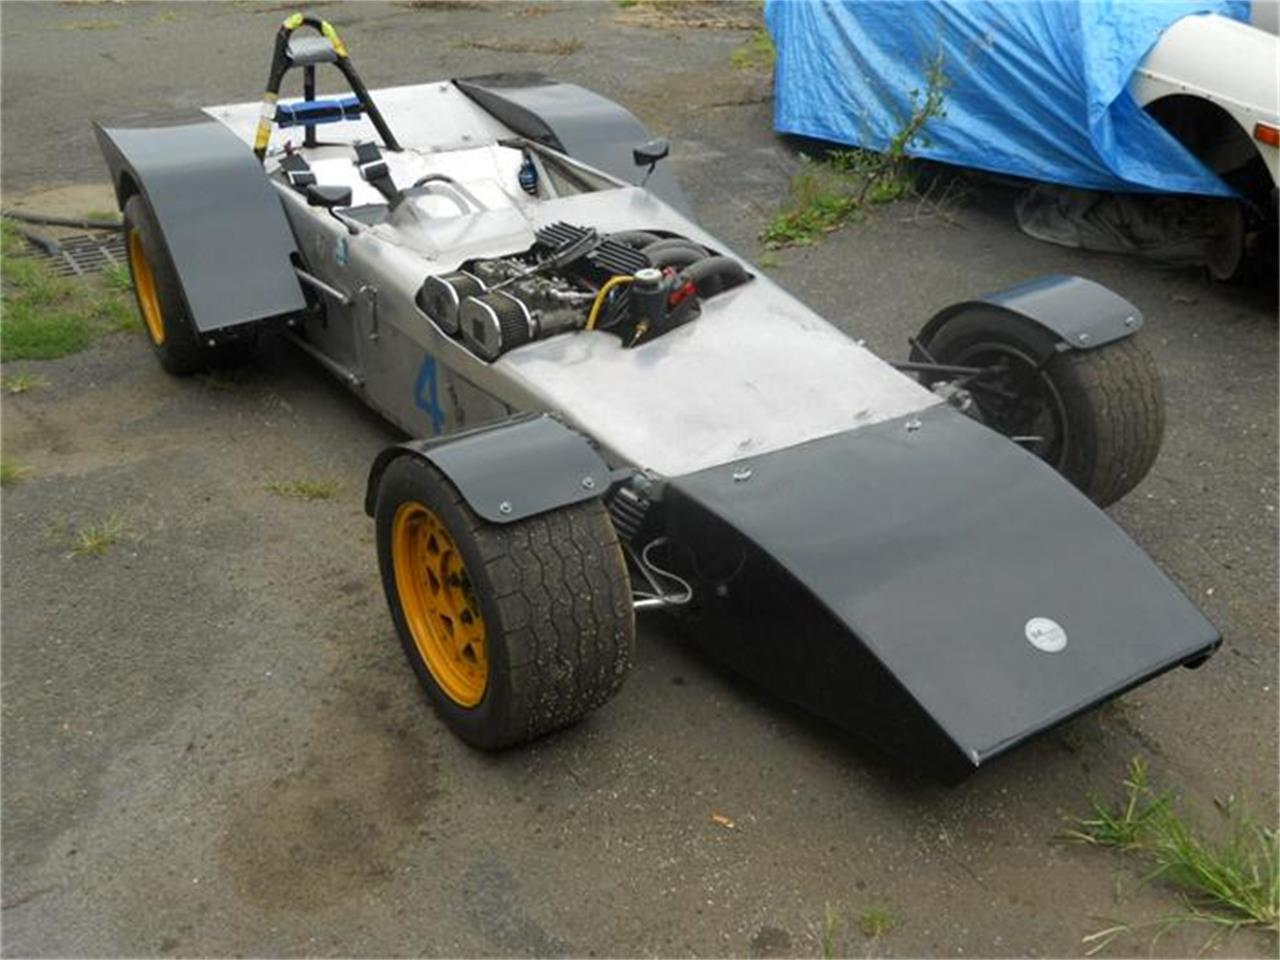 1972 Unspecified Race Car for sale in Stratford, CT